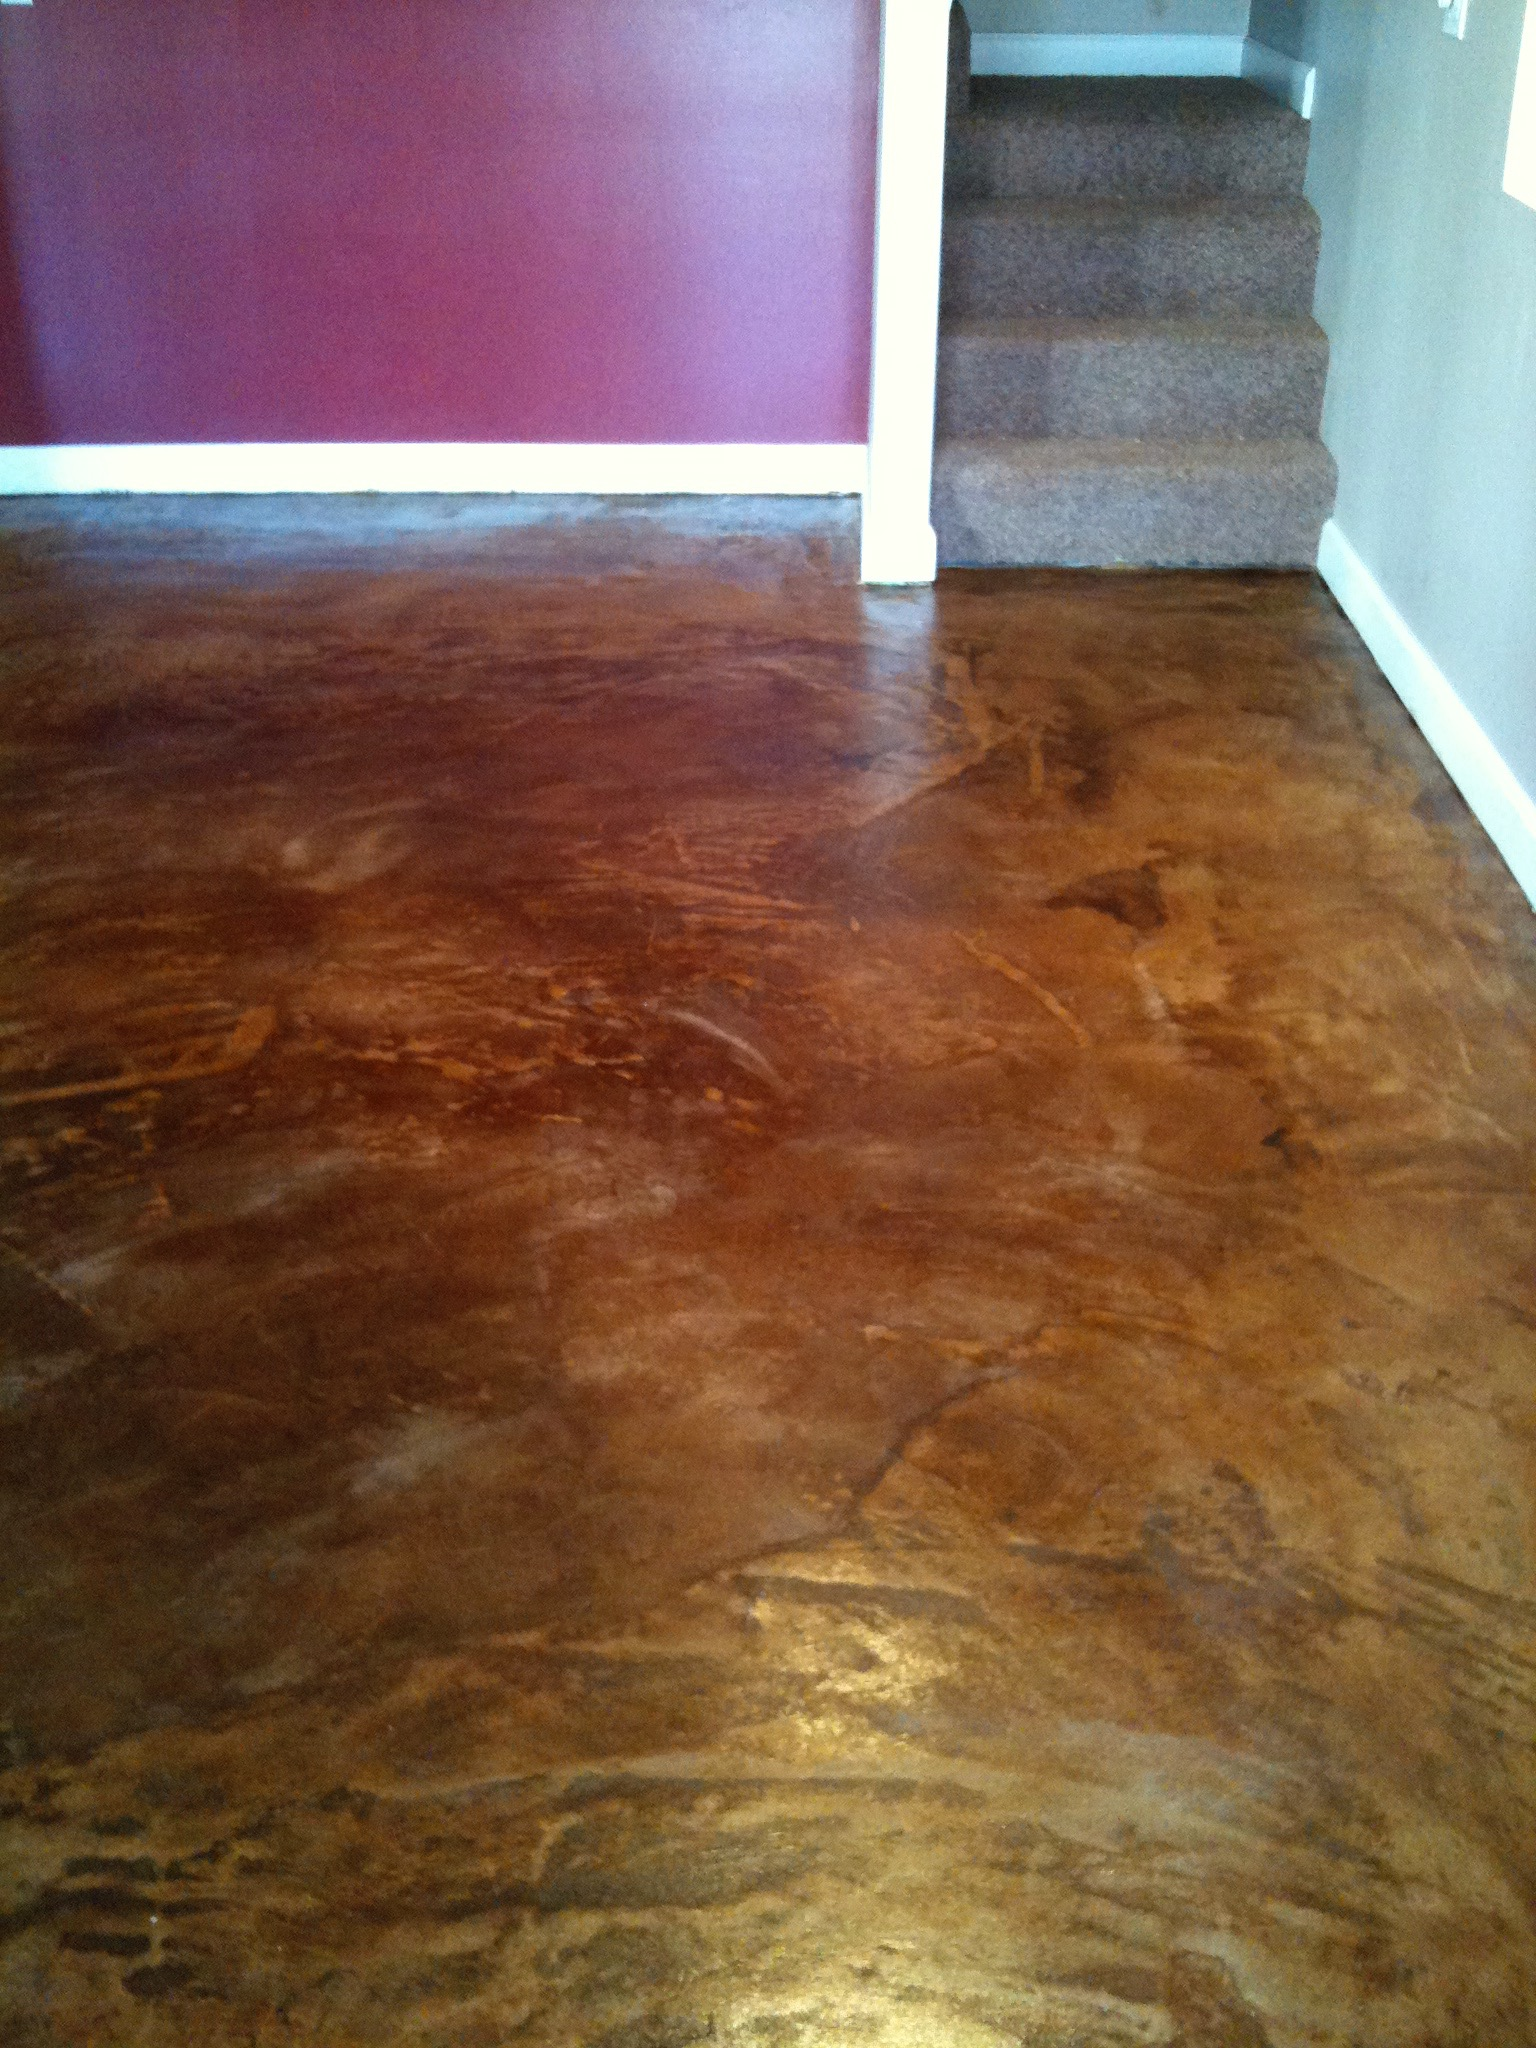 Concrete Overlay Flooring : Concrete overlays over wooden sub floors tile or other